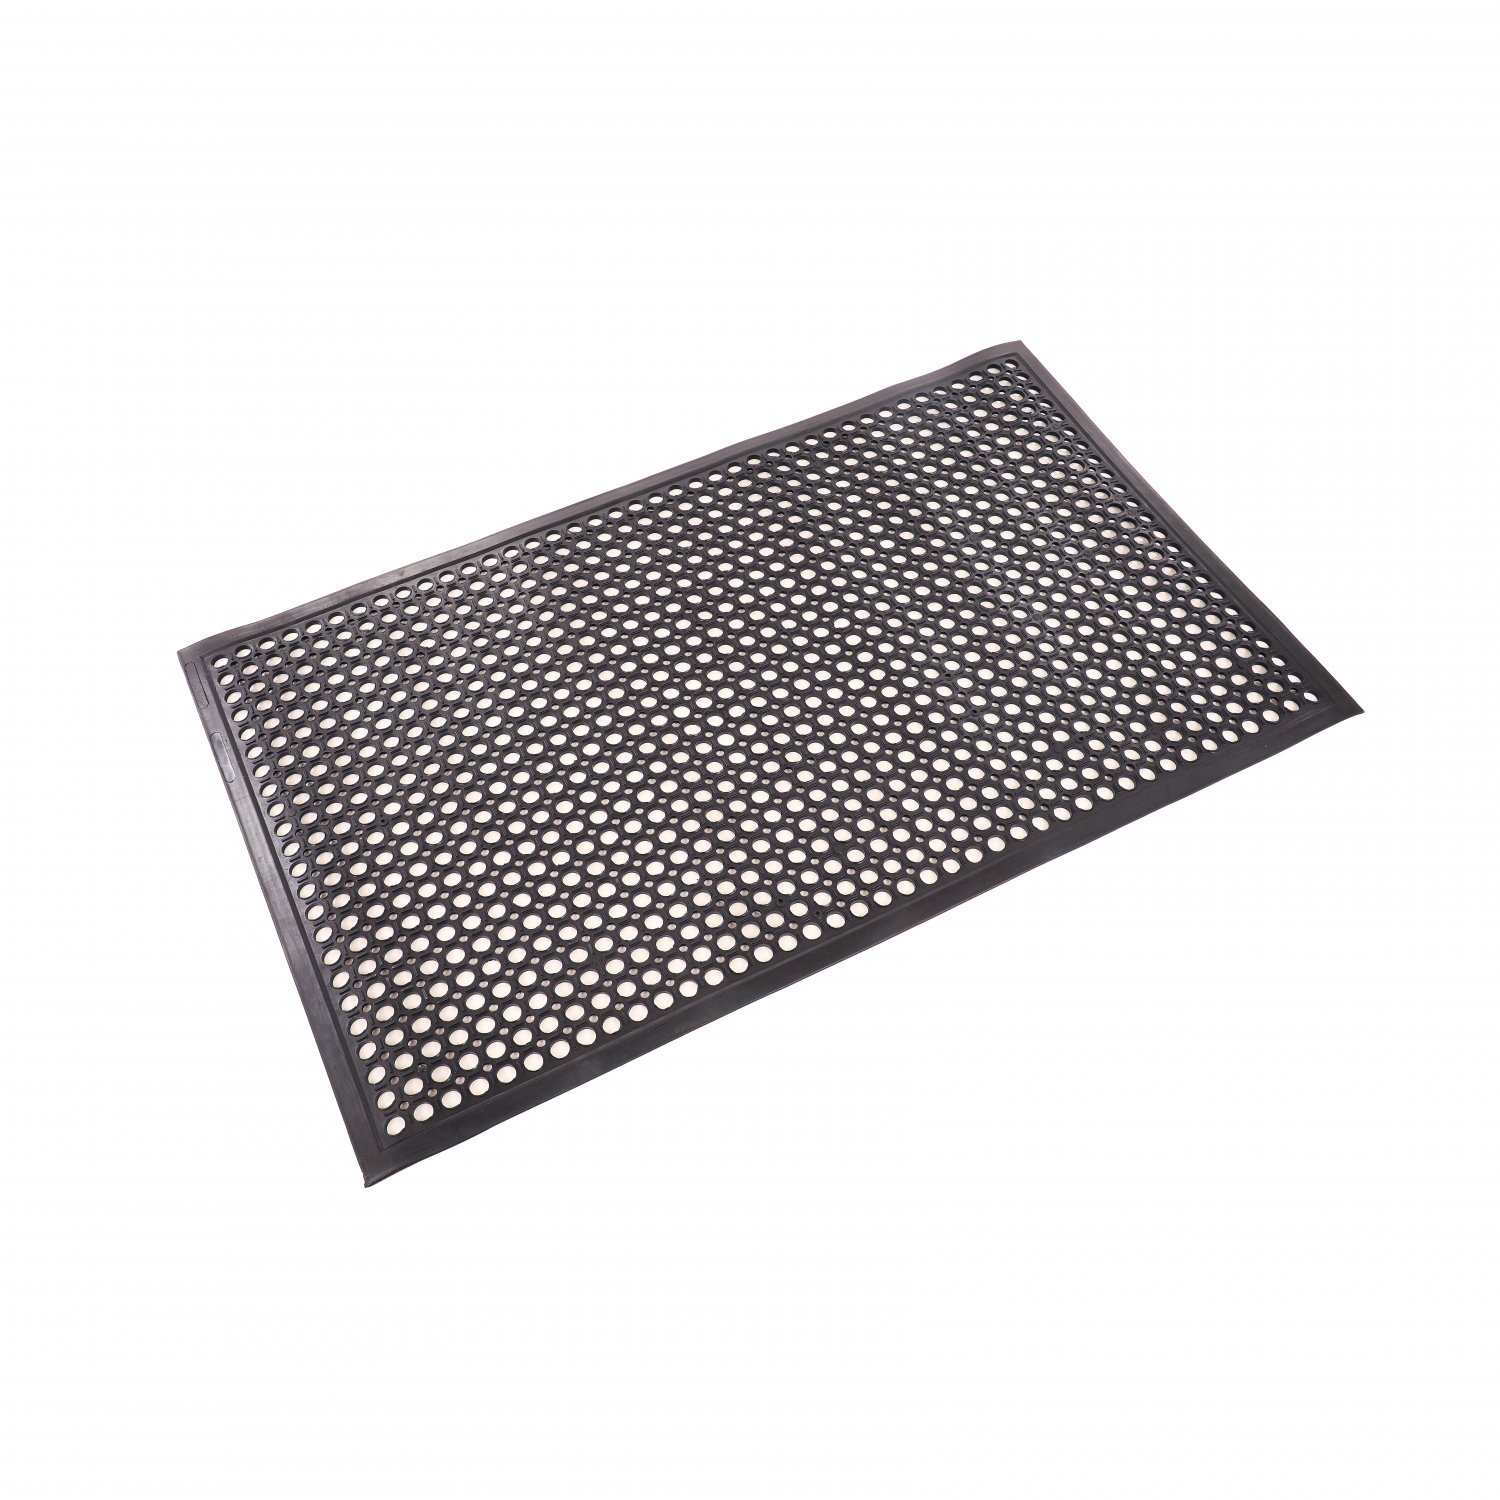 Large Durable Drainage Black Outdoor Door Anti-Slip Rubber Mat